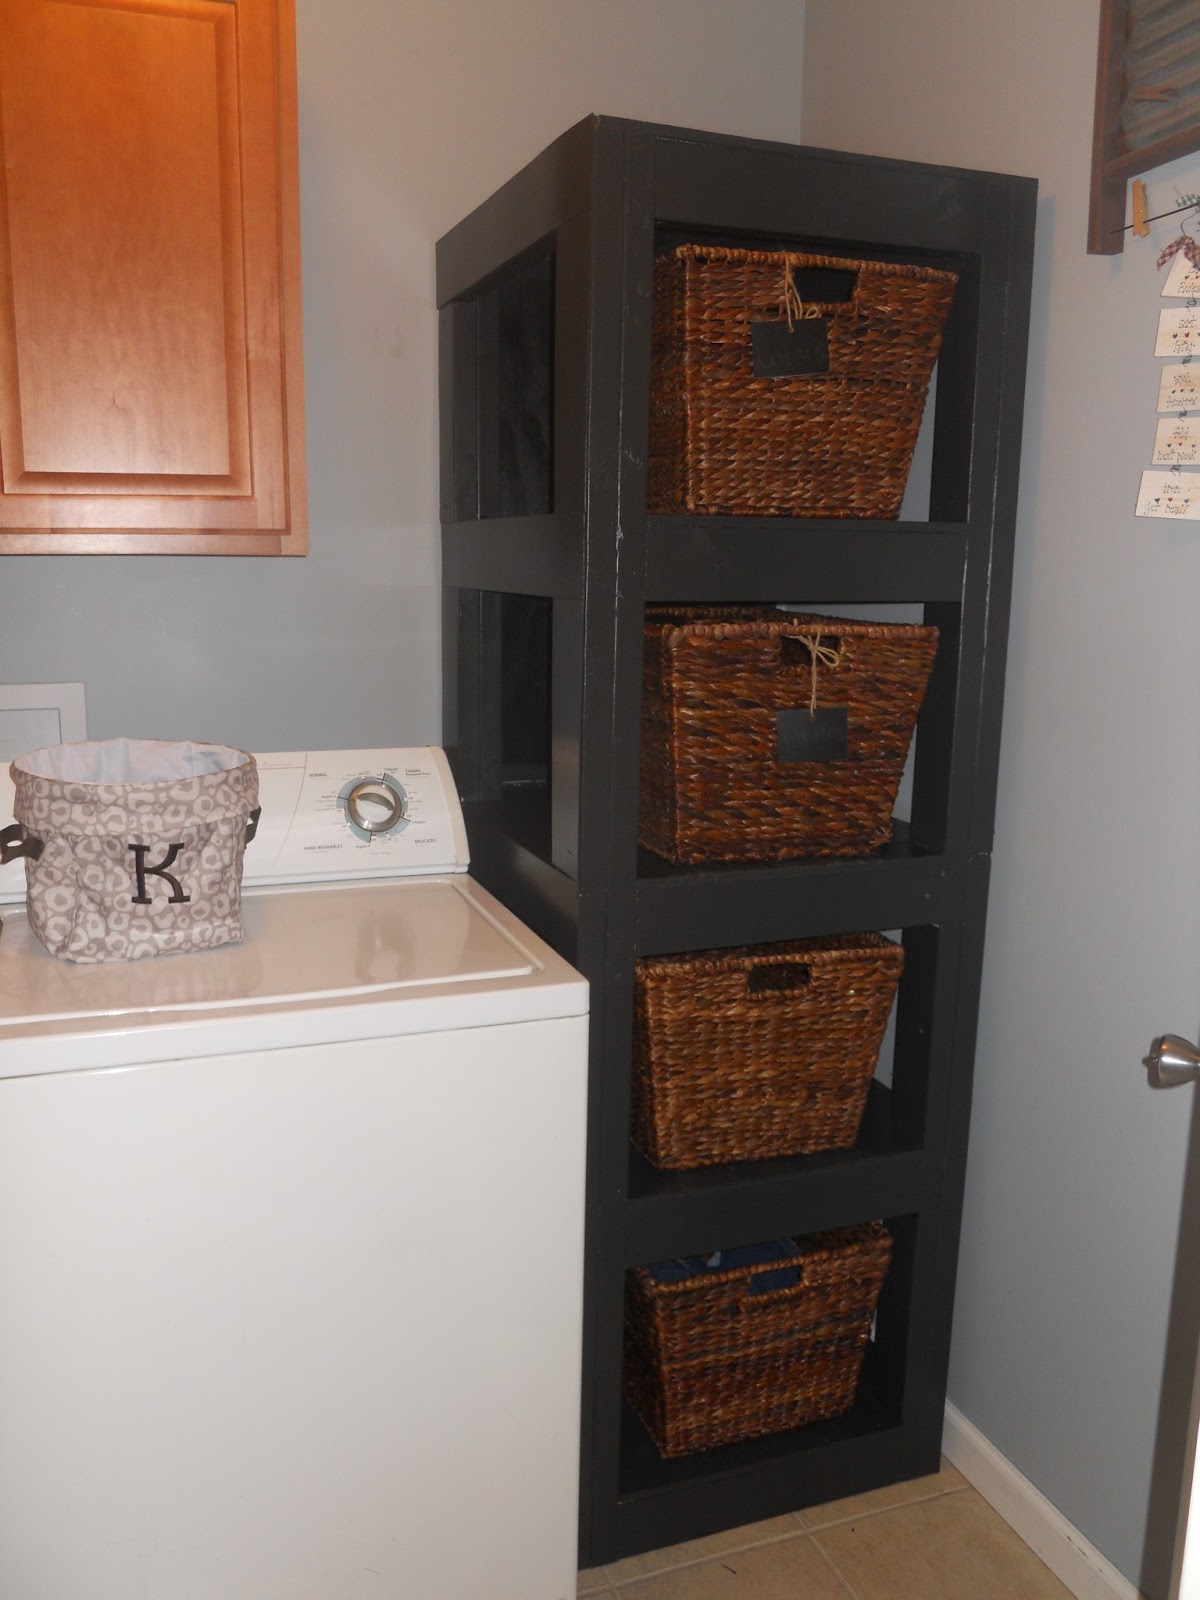 Laundry Basket With Shelves My Adventures In Treasure Hunting Diy Laundry Basket Shelf